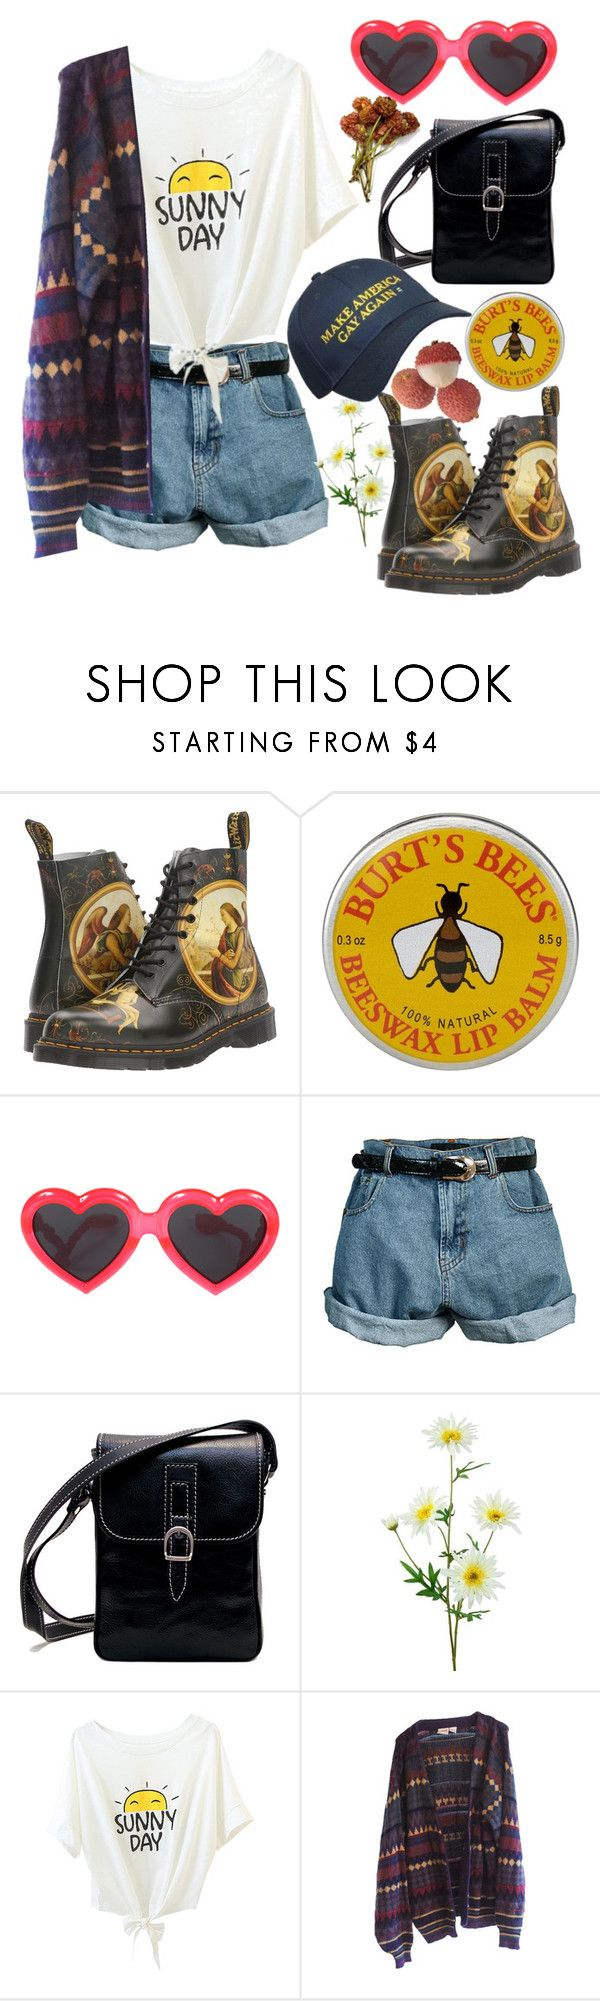 """""""Spring ft The Killers"""" by neo-moth ❤ liked on Polyvore featuring Dr. Martens, Burt's Bees, Linda Farrow and Retrò"""